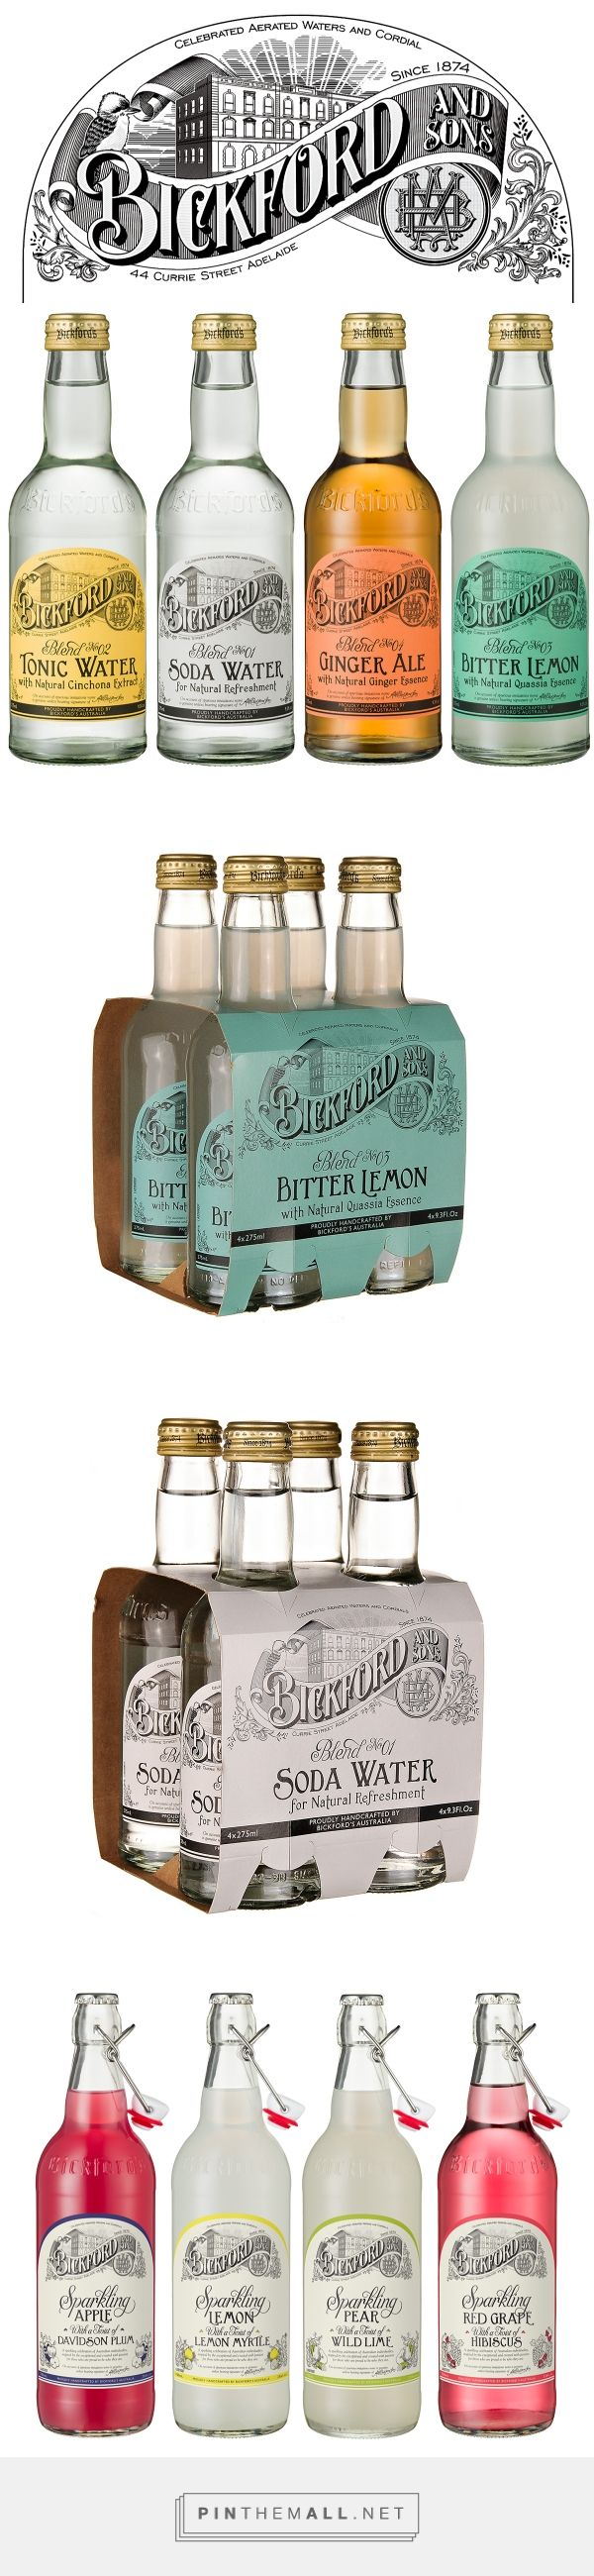 Bickford and Sons Beverage Packaging by Bobby Haiqalsyah | Fivestar Branding – Design and Branding Agency & Inspiration Gallery